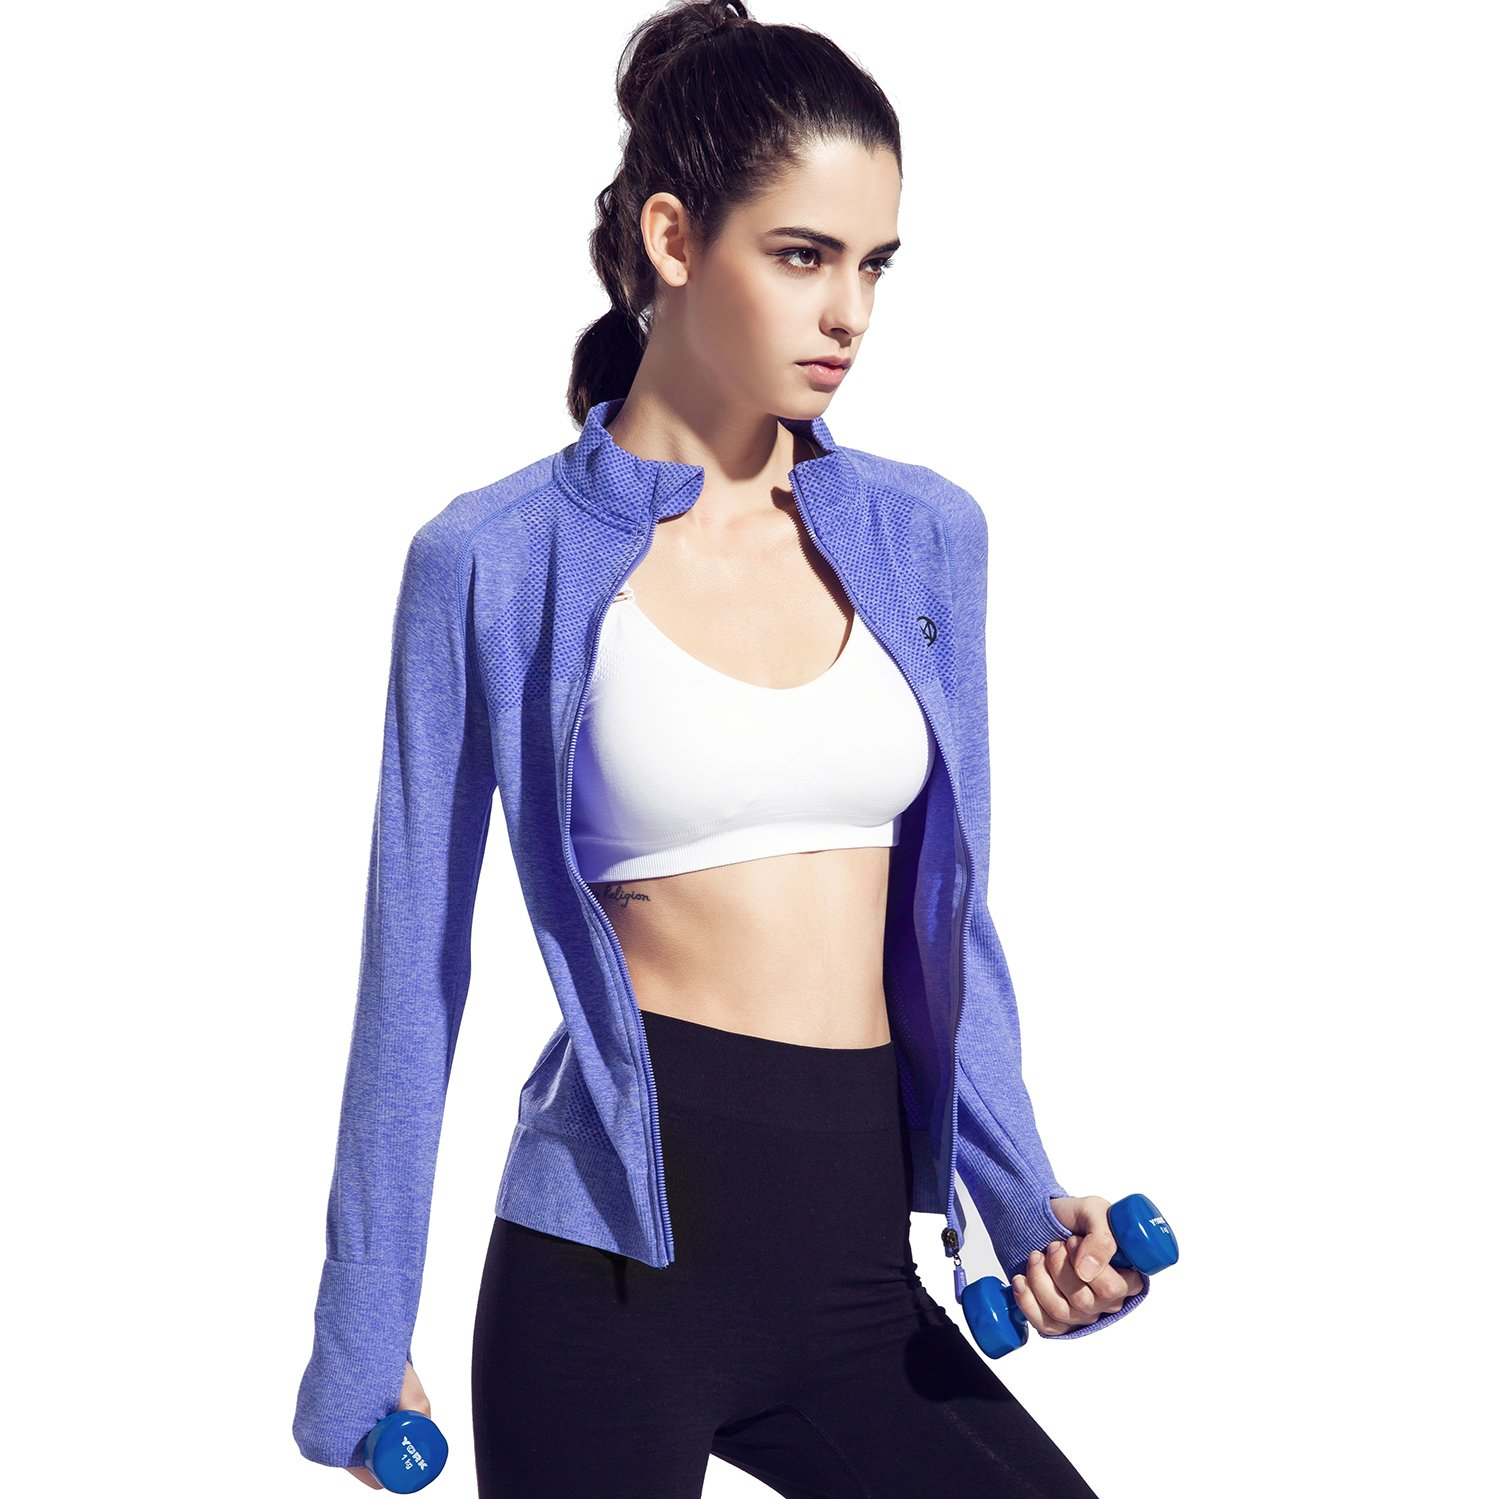 a72dcb4f94 Speedle Women's Workout and Yoga Zip Up Stretchy Jacket with Thumb Holes at  Amazon Women's Clothing store: